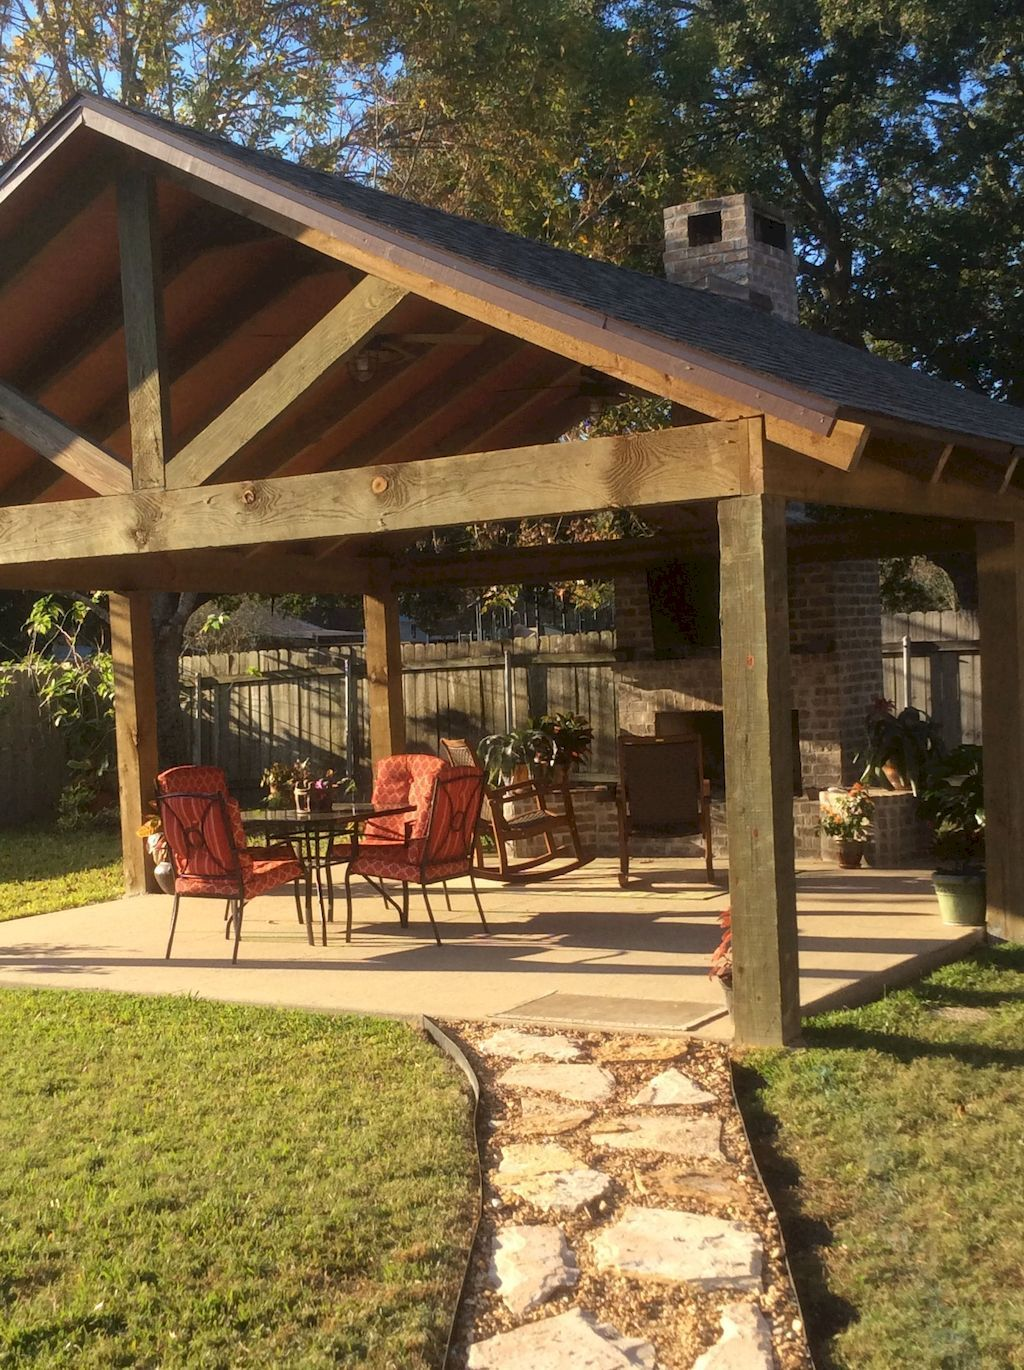 Backyard Gazebos Create A Cozy Outside Look And A Enjoyable Ambiance With Images Outdoor Remodel Backyard Patio Backyard Pavilion